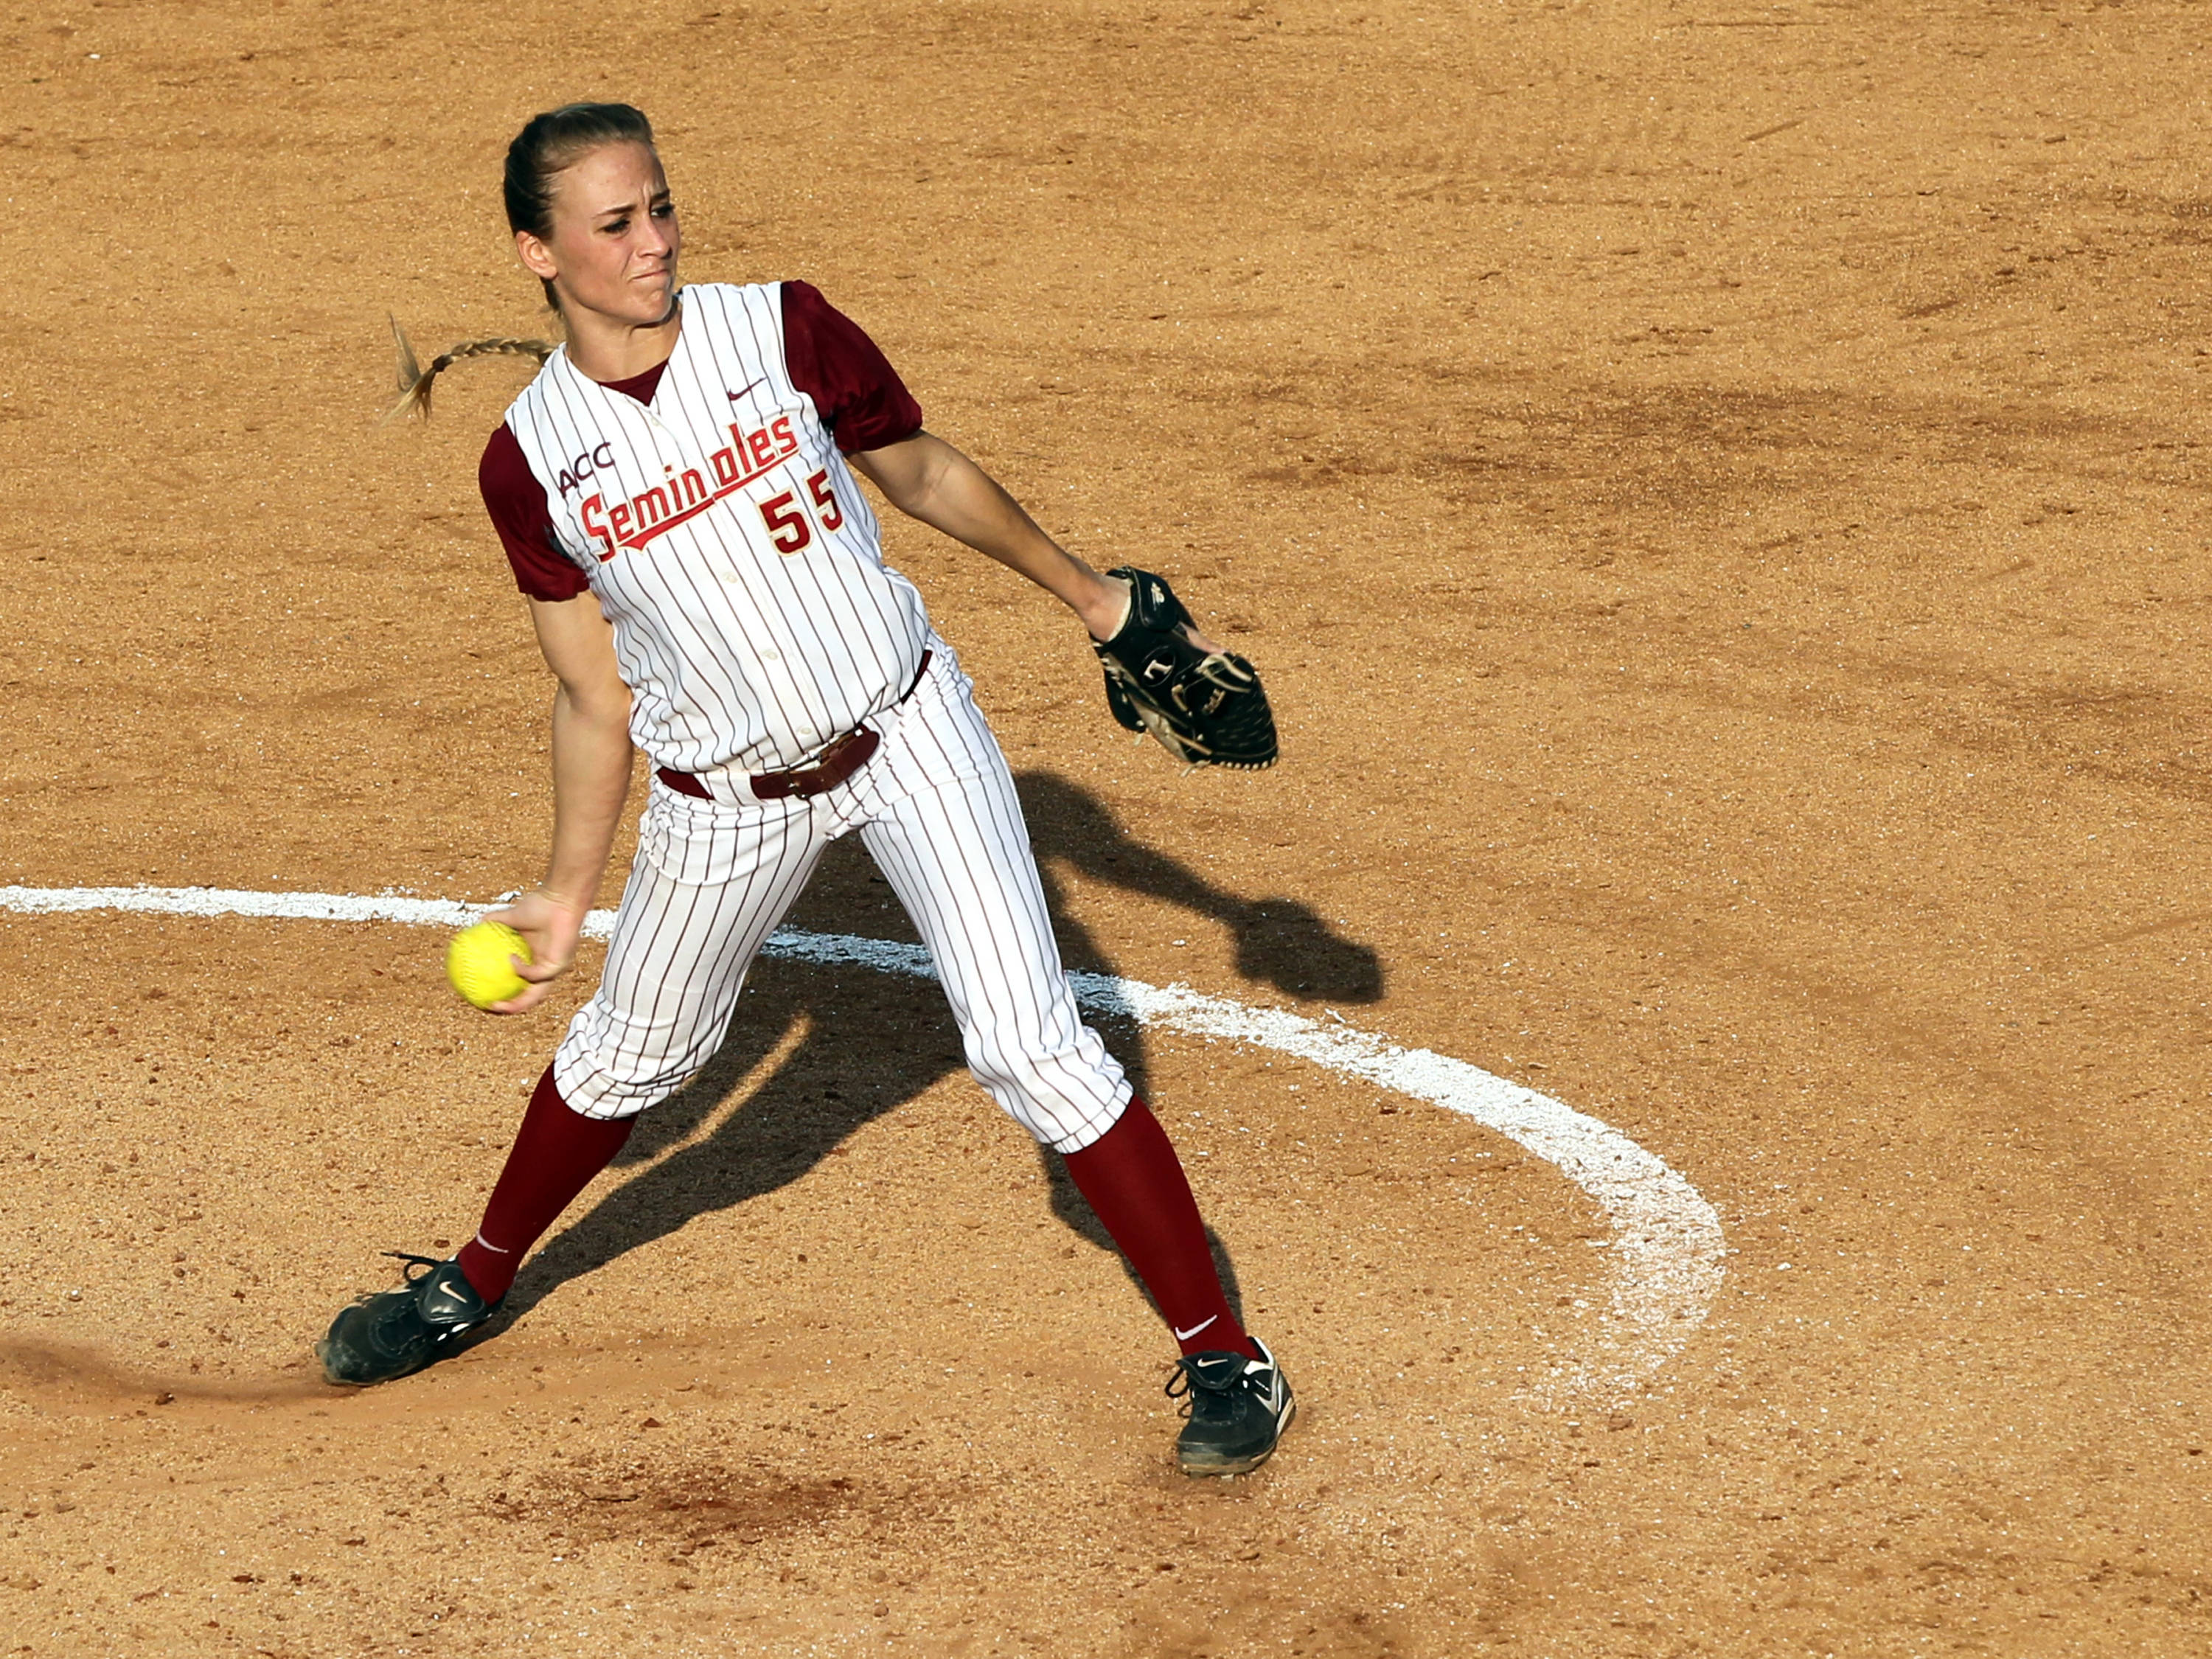 Monica Perry, FSU VS BC, ACC Championship Quarterfinals, Tallahassee, FL,  05/09/13 . (Photo by Steve Musco)